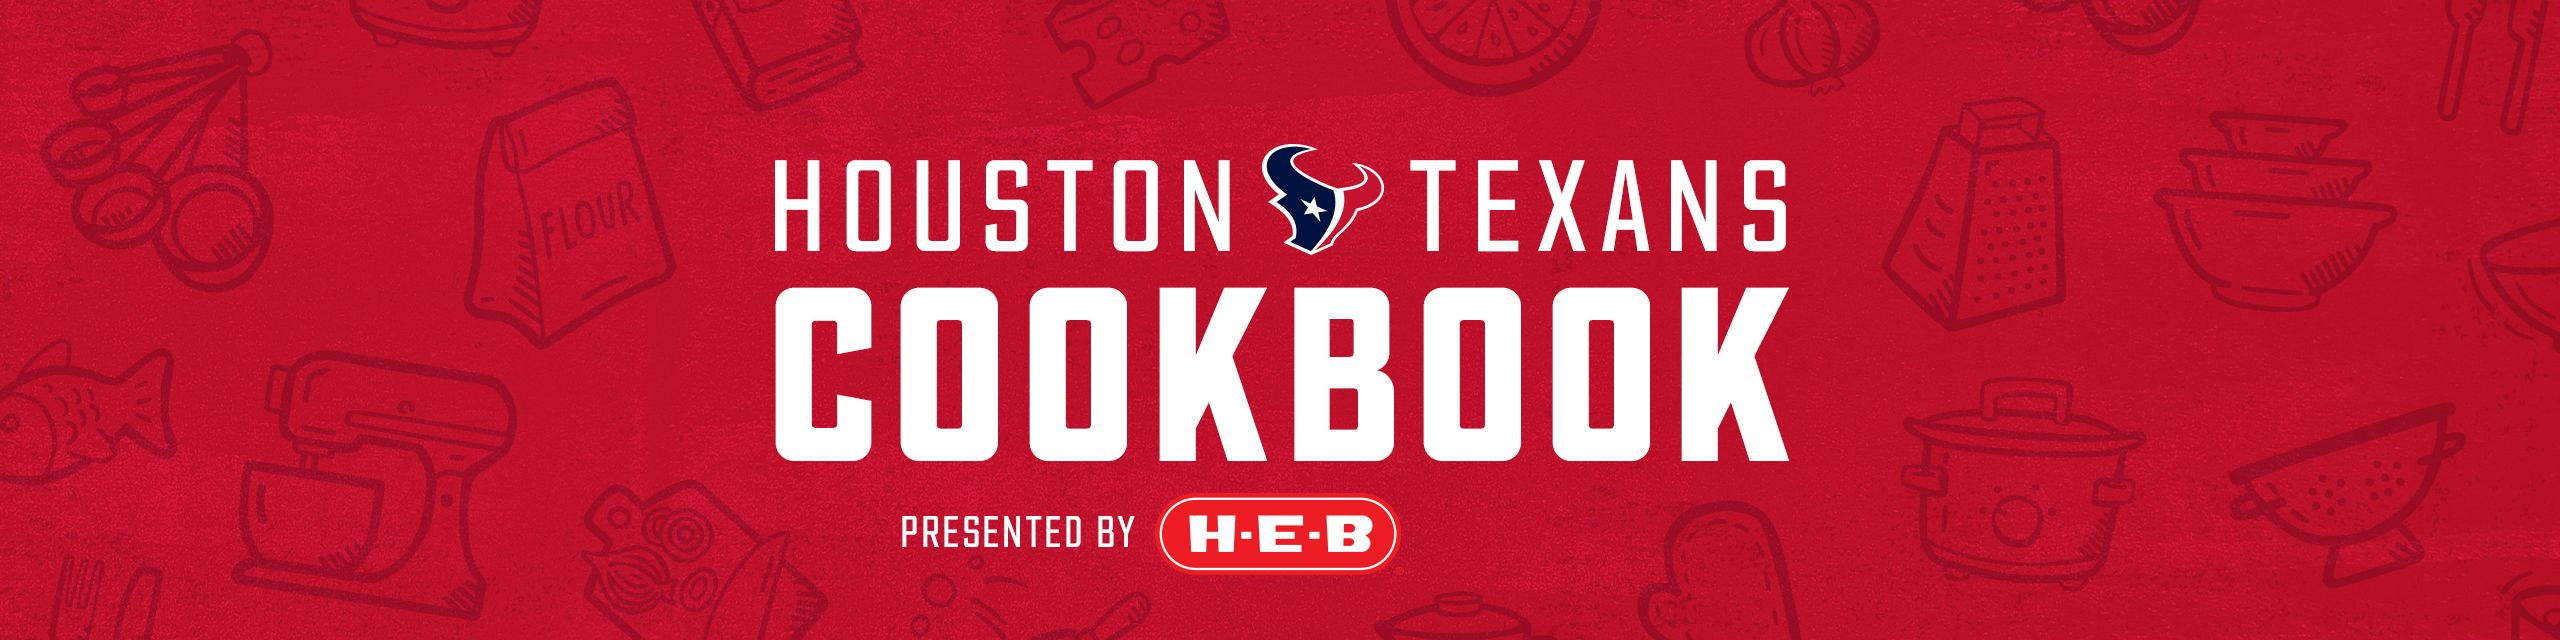 Texans Cookbook. presented by H-E-B